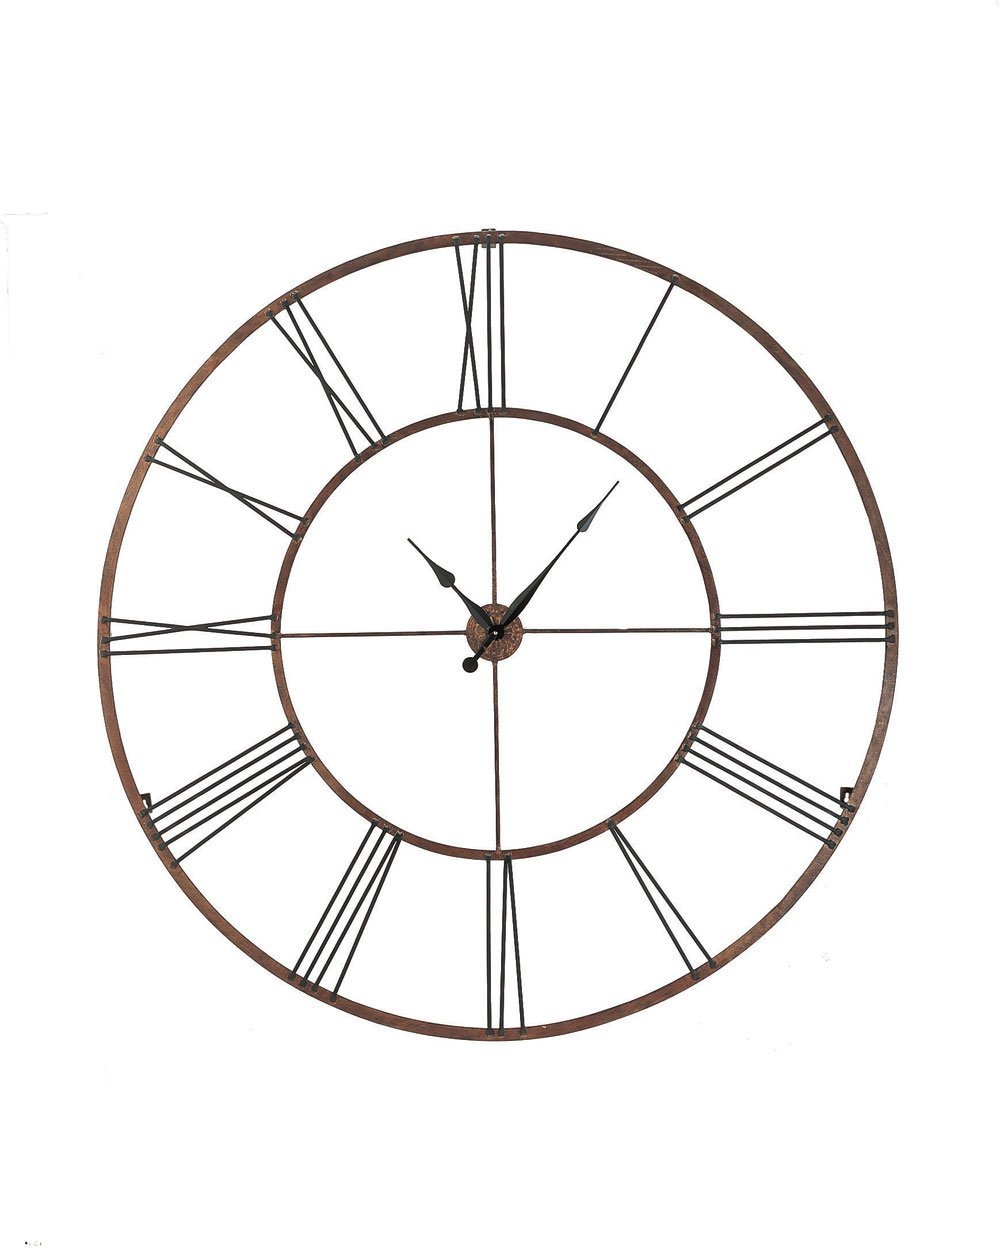 Giant roman numeral wall clock gallery home wall decoration ideas metal wall clock roman numerals total fab oversized giant metal wall clocks amipublicfo gallery amipublicfo Gallery